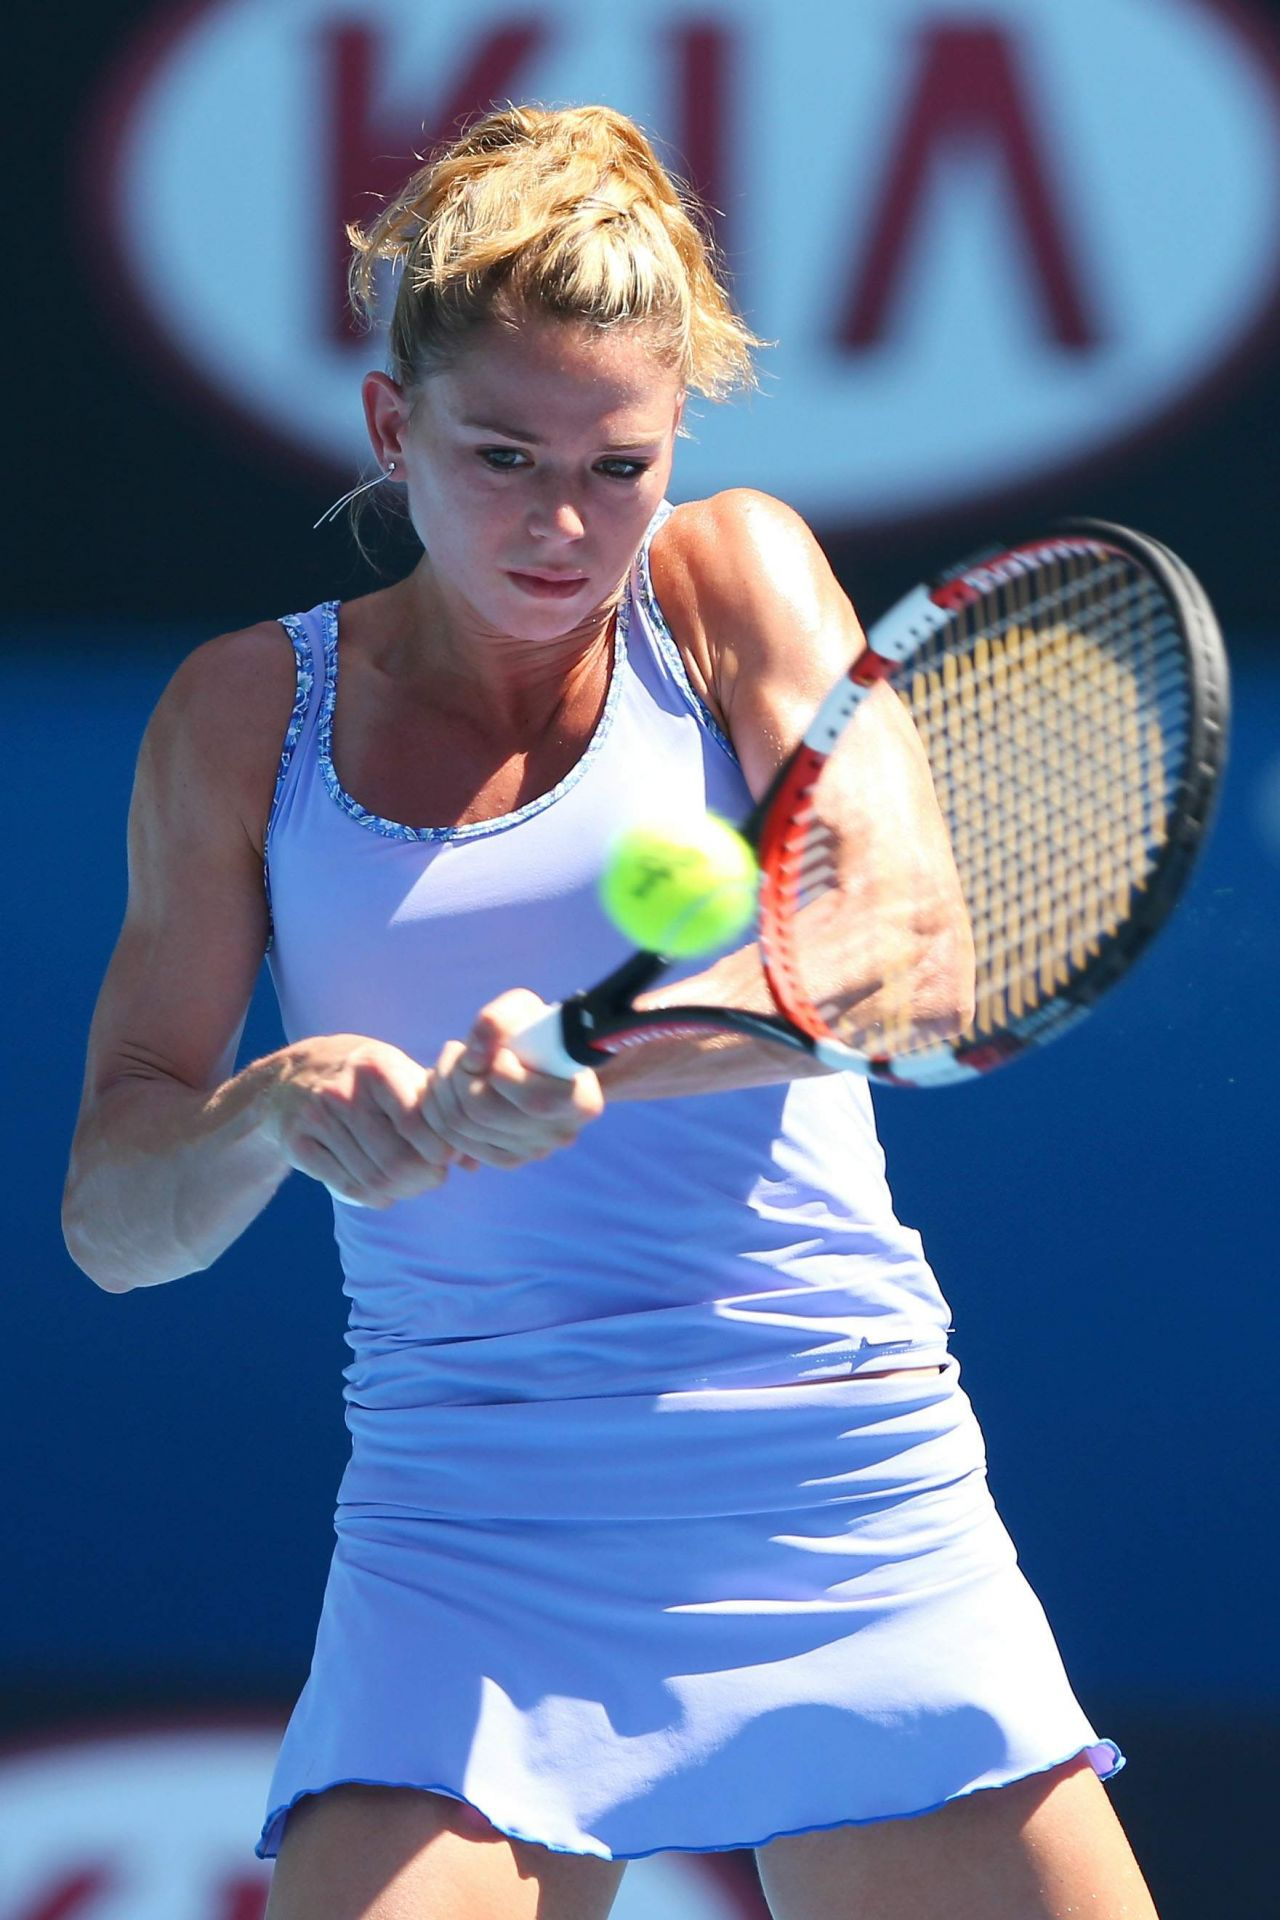 Camila Giorgi - Australian Open, January 16, 2014